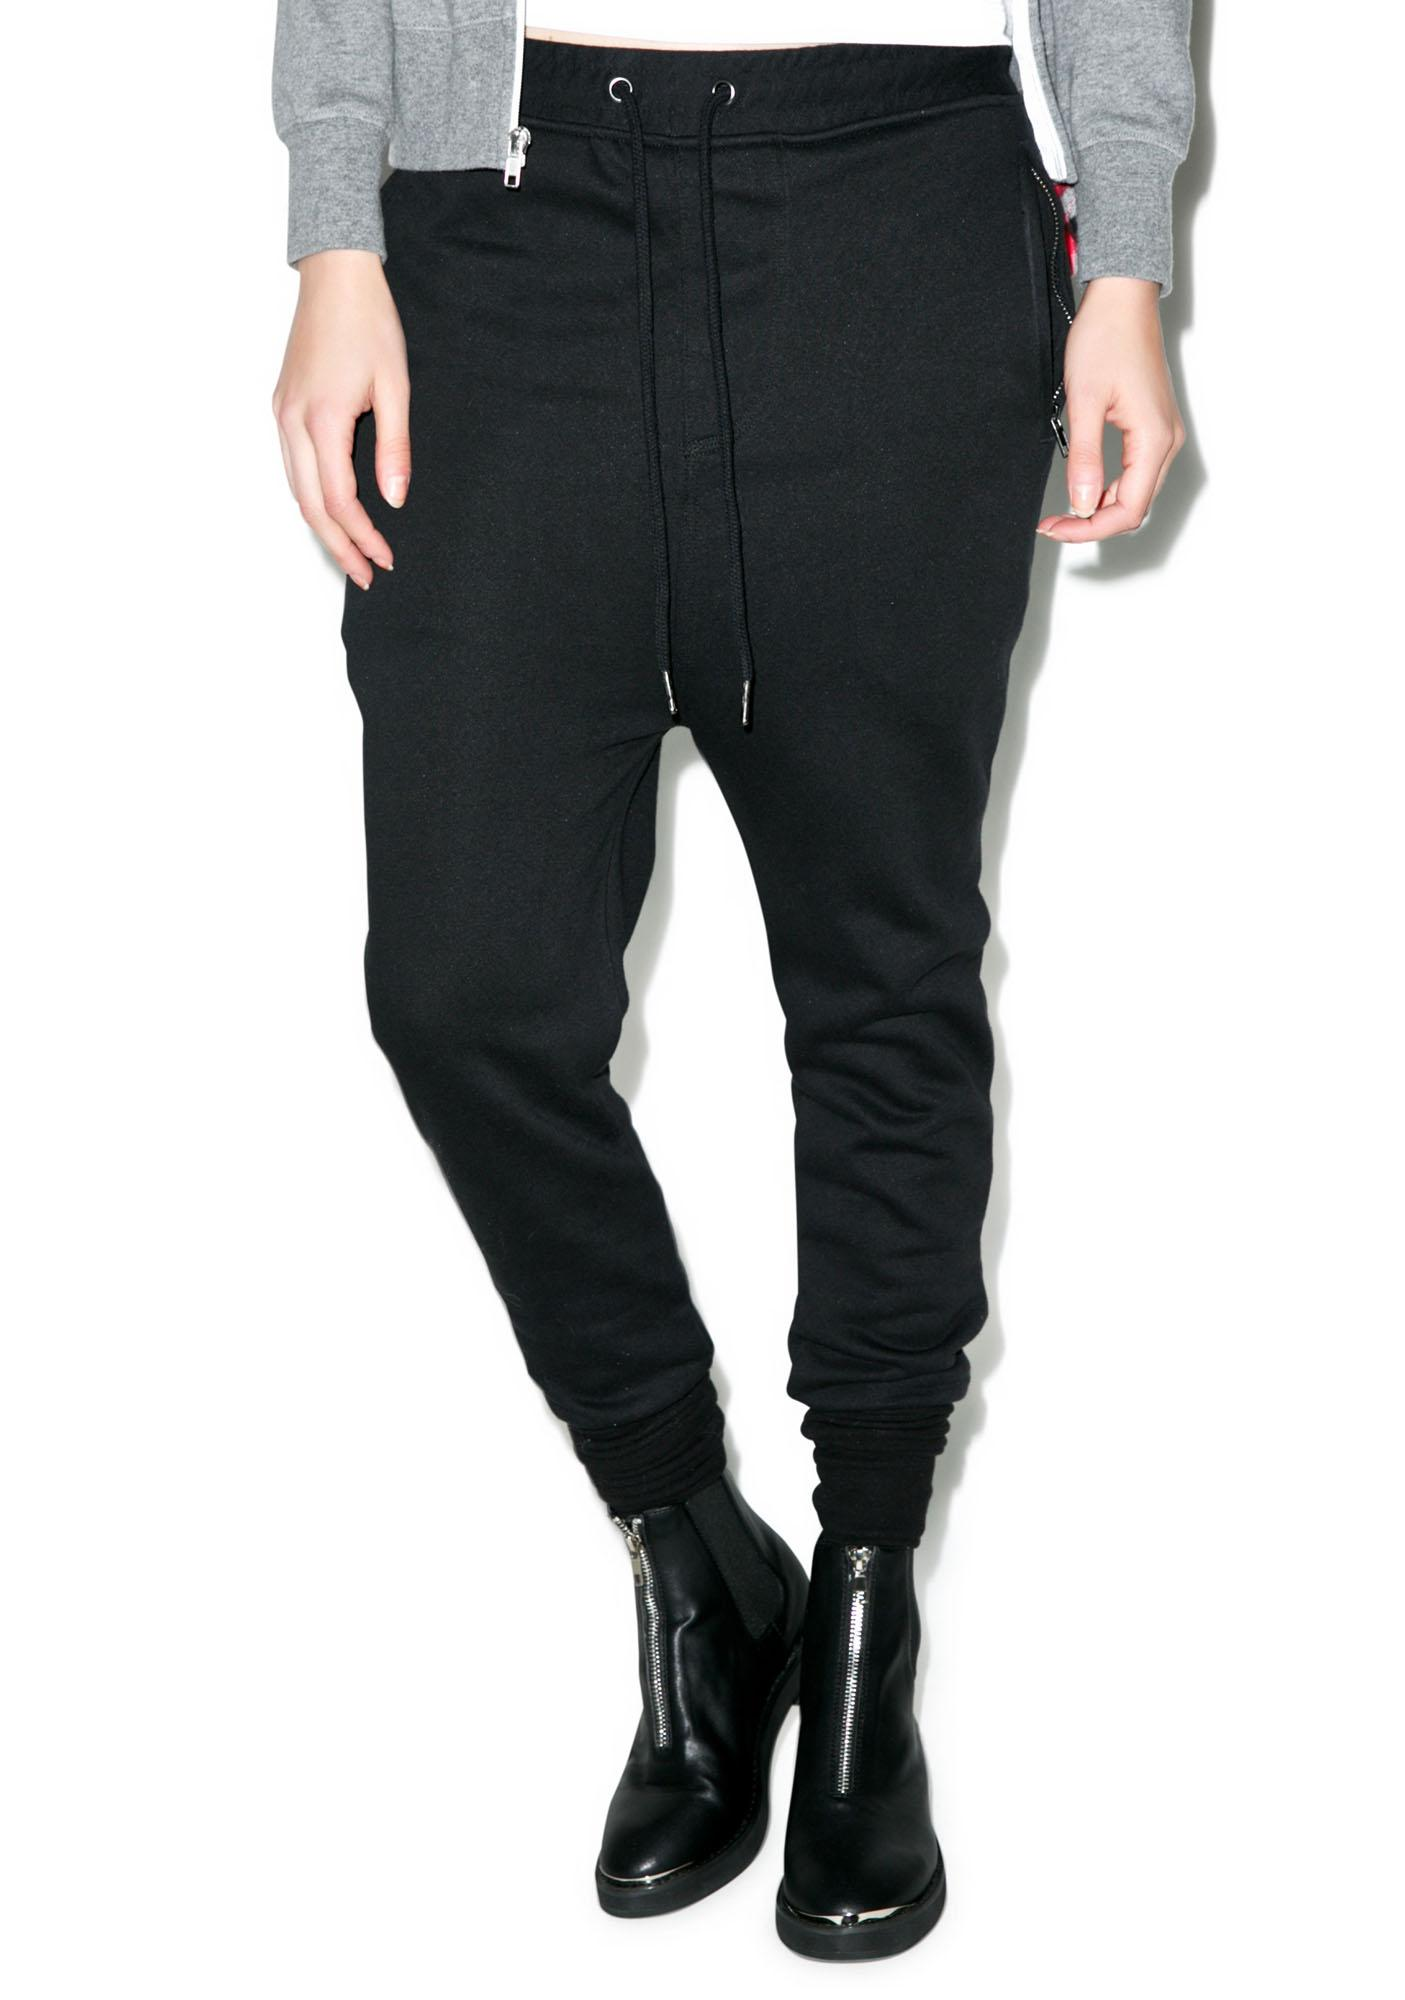 Killstar FTW Dropcrotch Sweatpants